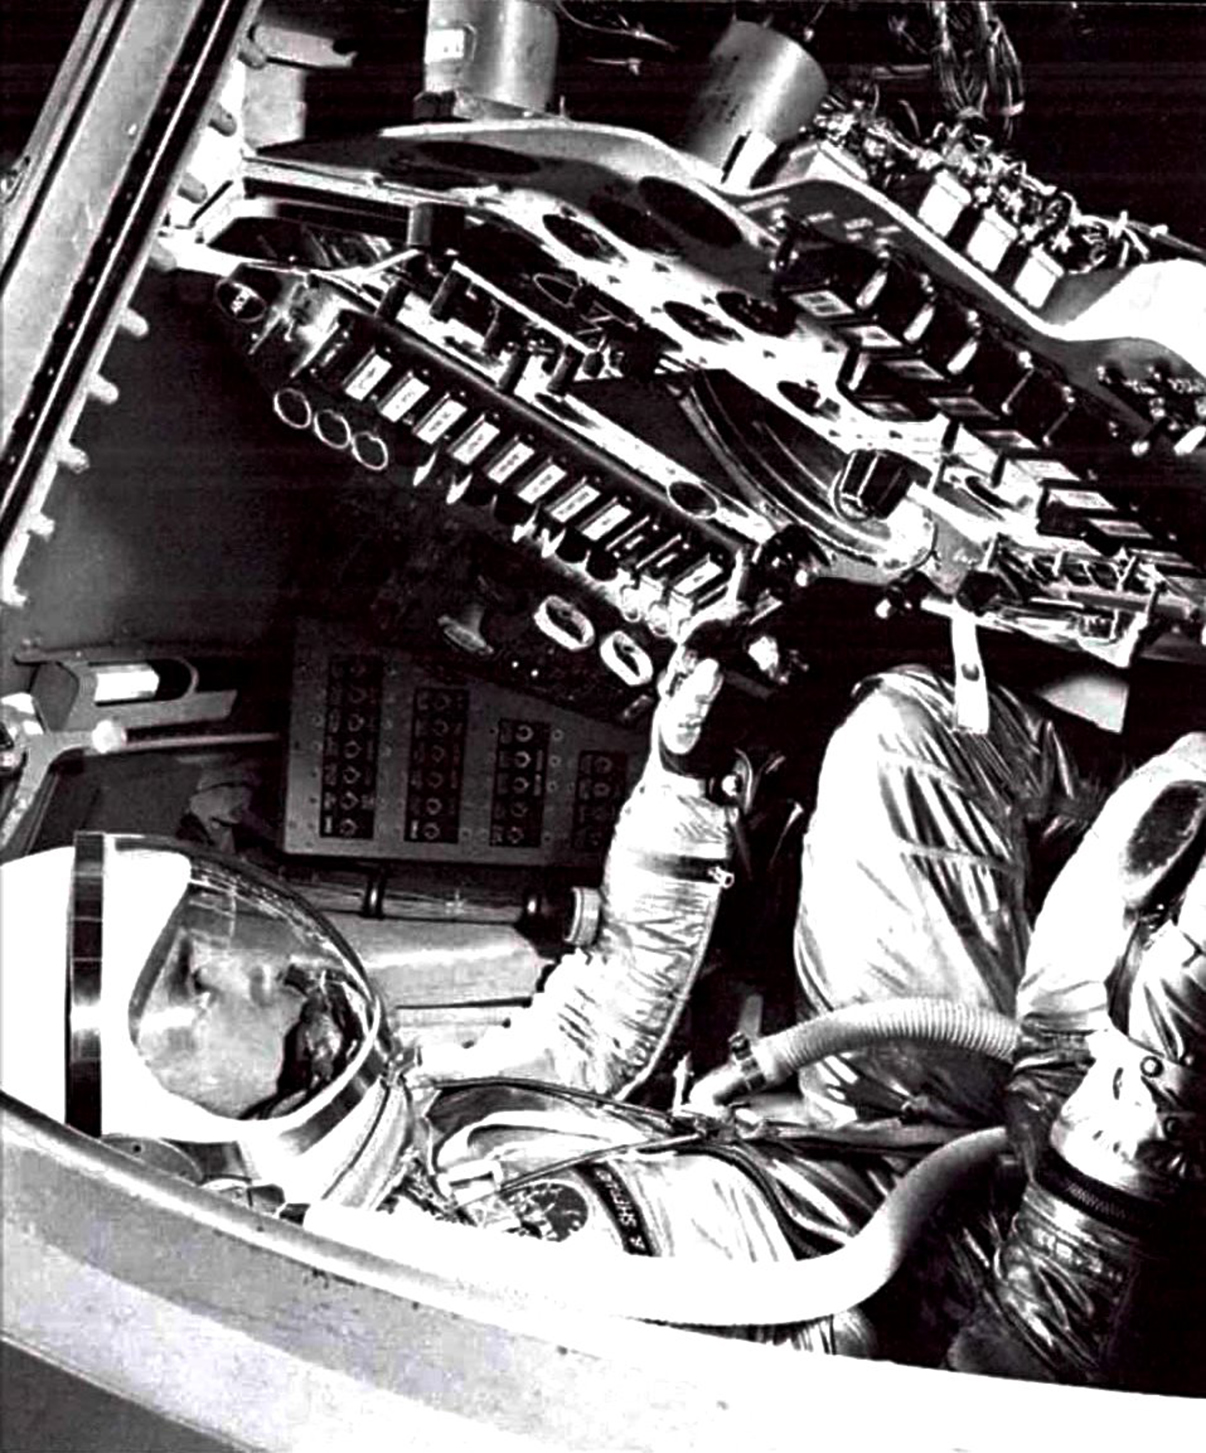 alan shepard before nasa - photo #5